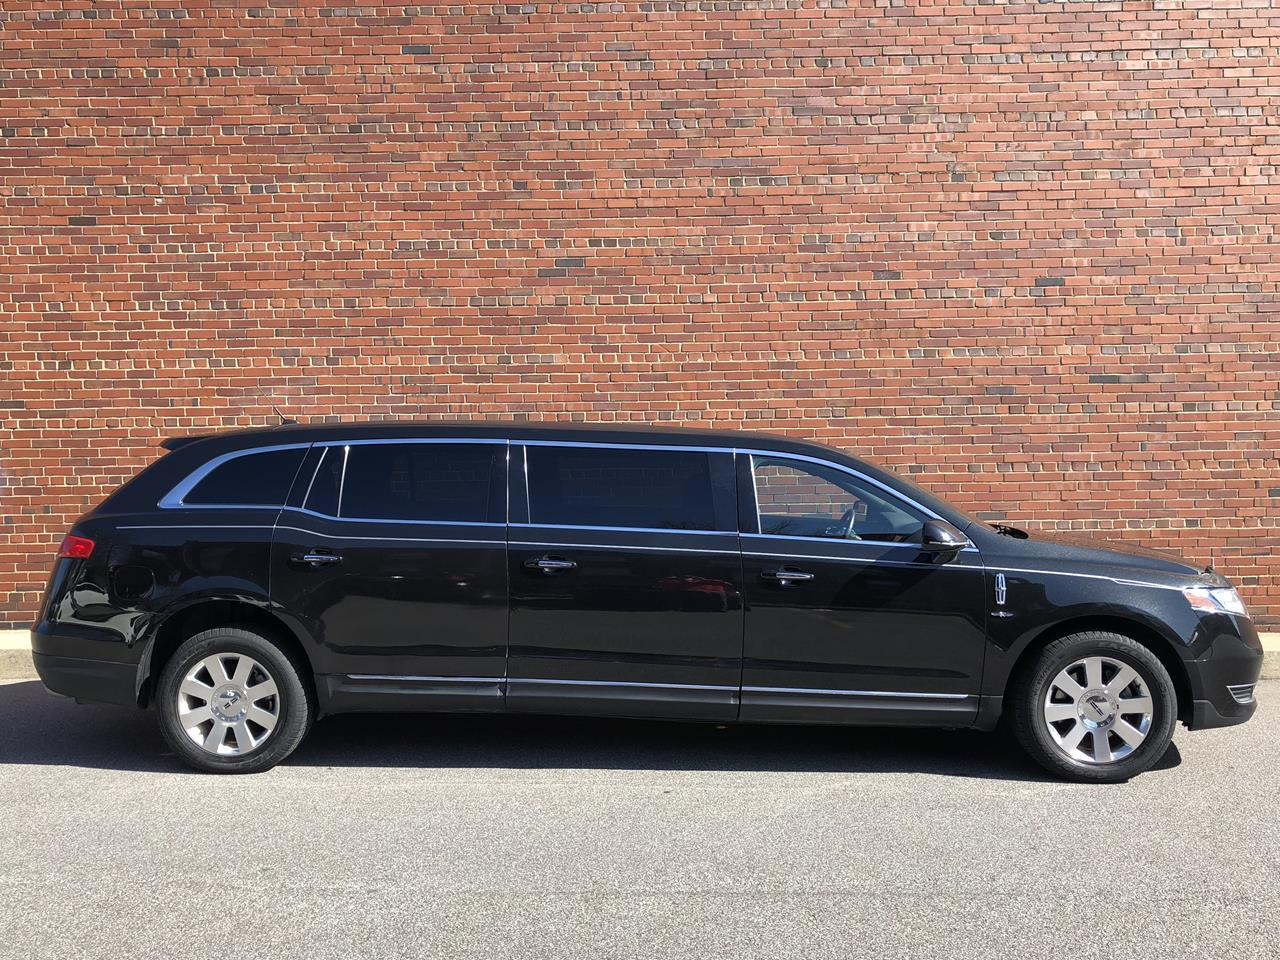 2014 Lincoln Eagle 6 Door Limousine